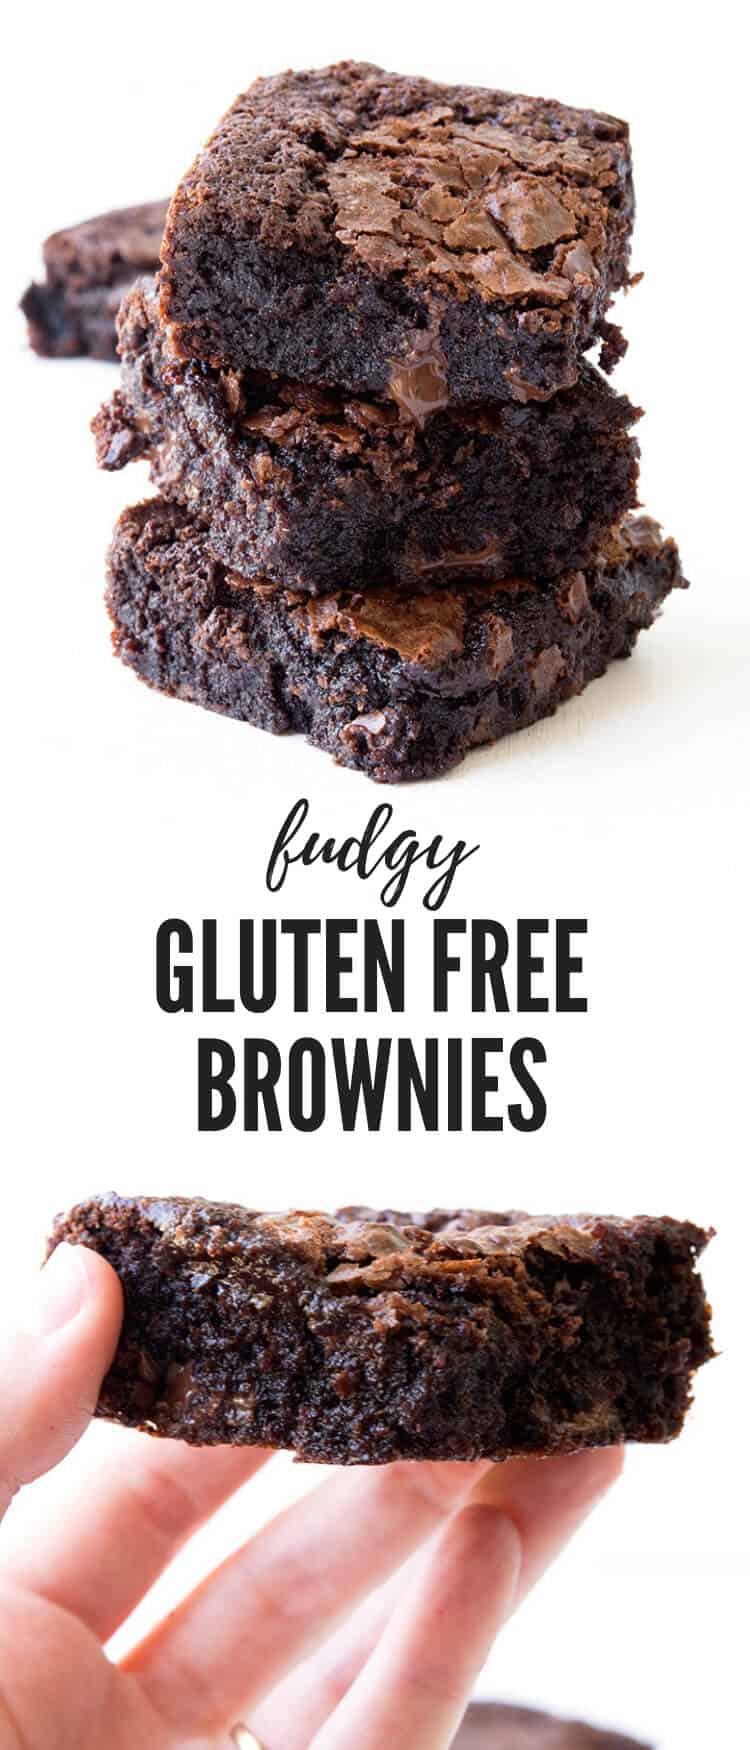 Hands down, the BEST gluten free chocolate brownies that are extra fudgy and gooey. Everyone will LOVE these! Recipe from sweetestmenu.com #glutenfree #brownies #baking #dessert #chocolate